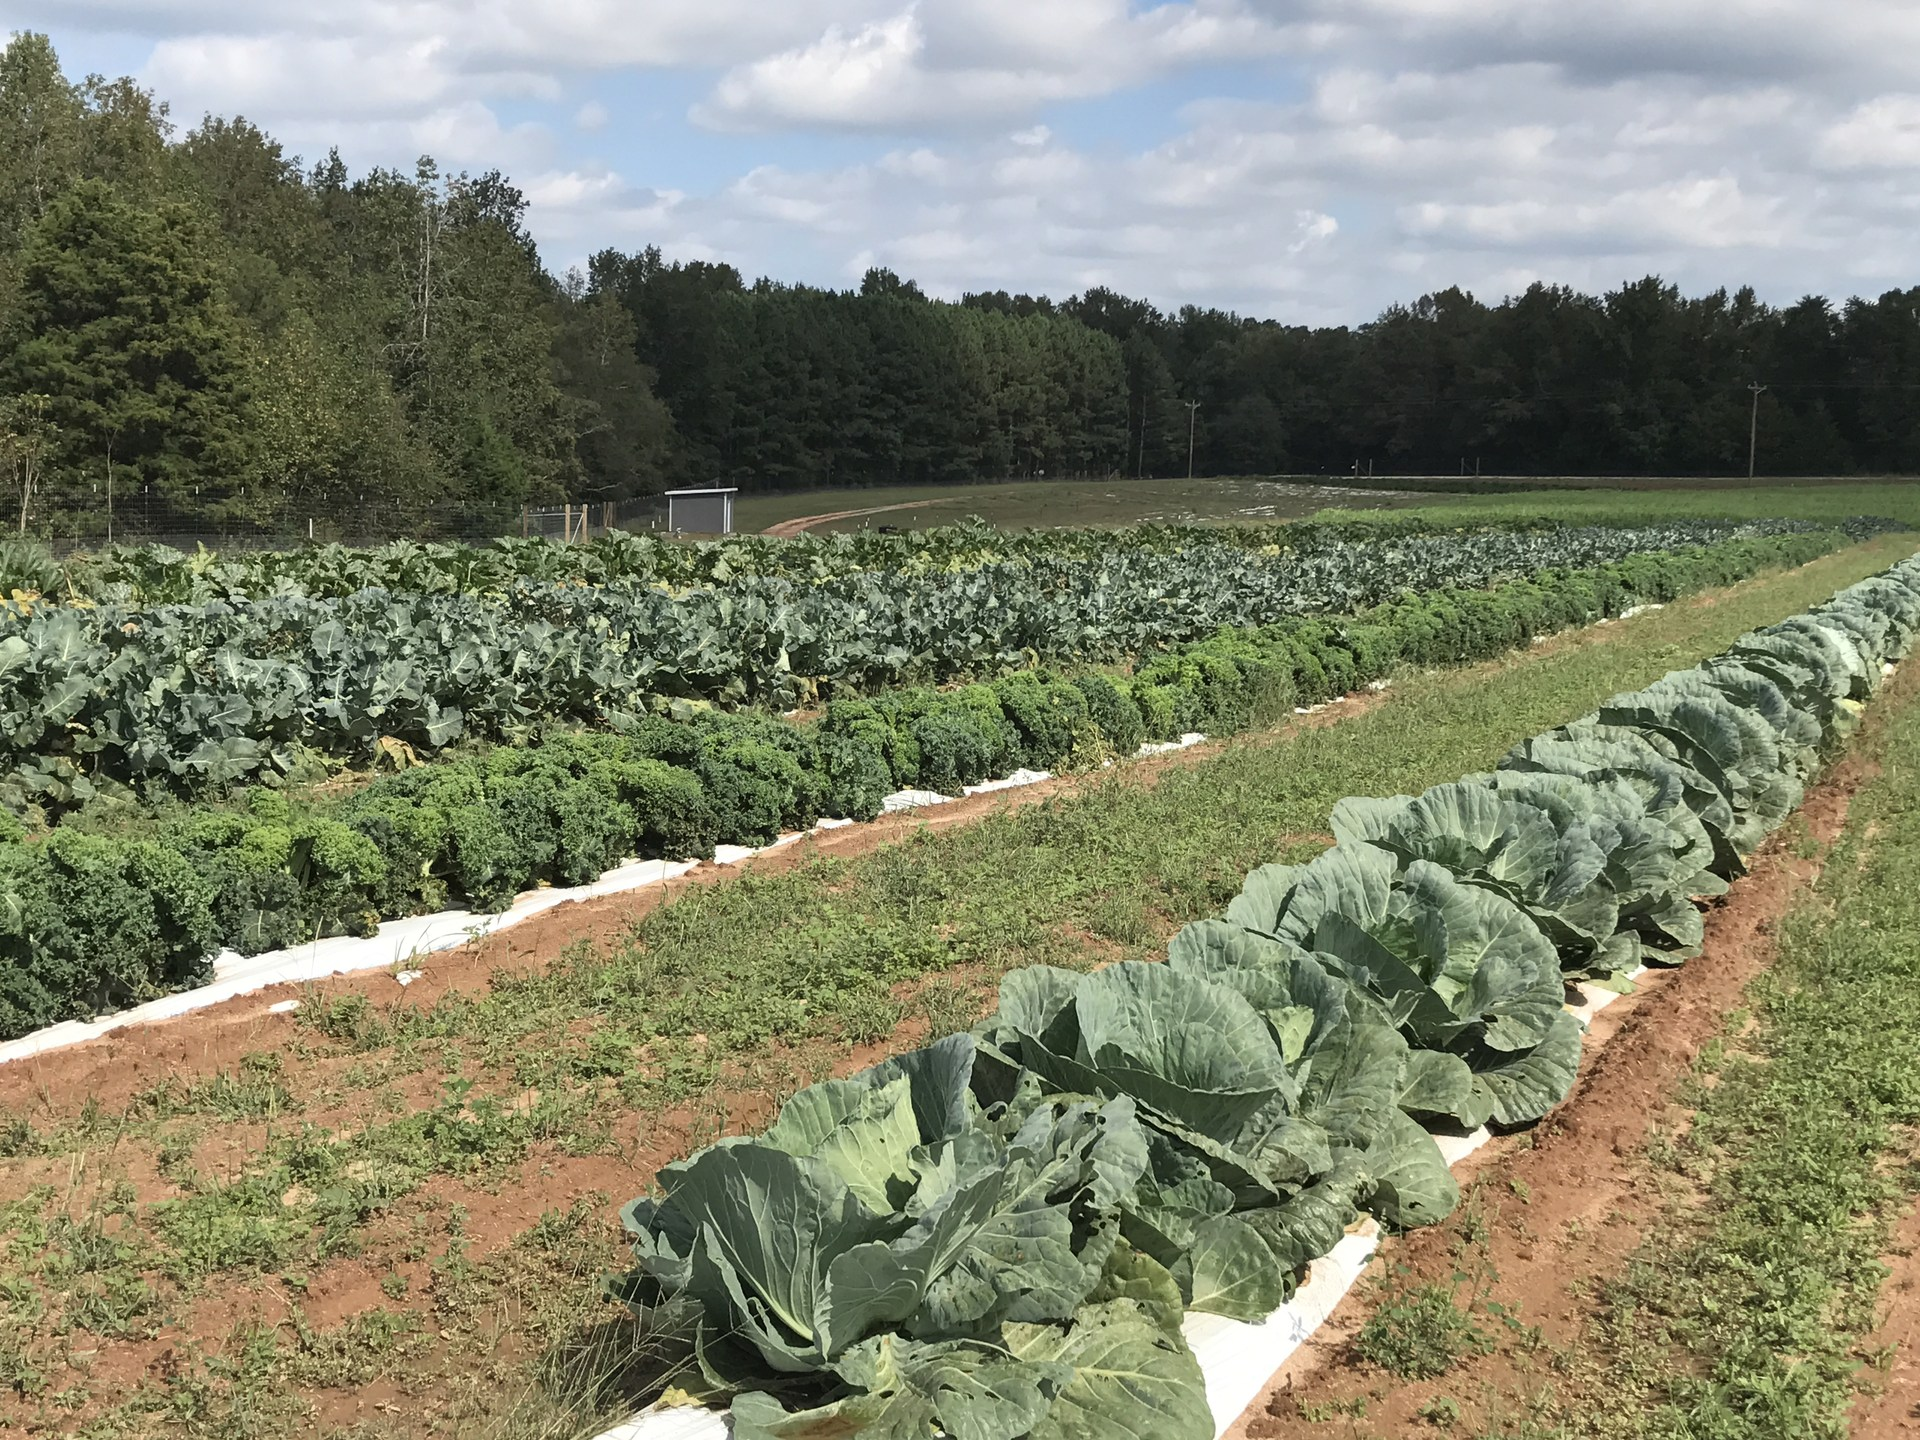 Pictures of cabbage on the farm - a wide shot. Shows lots of cabbage.